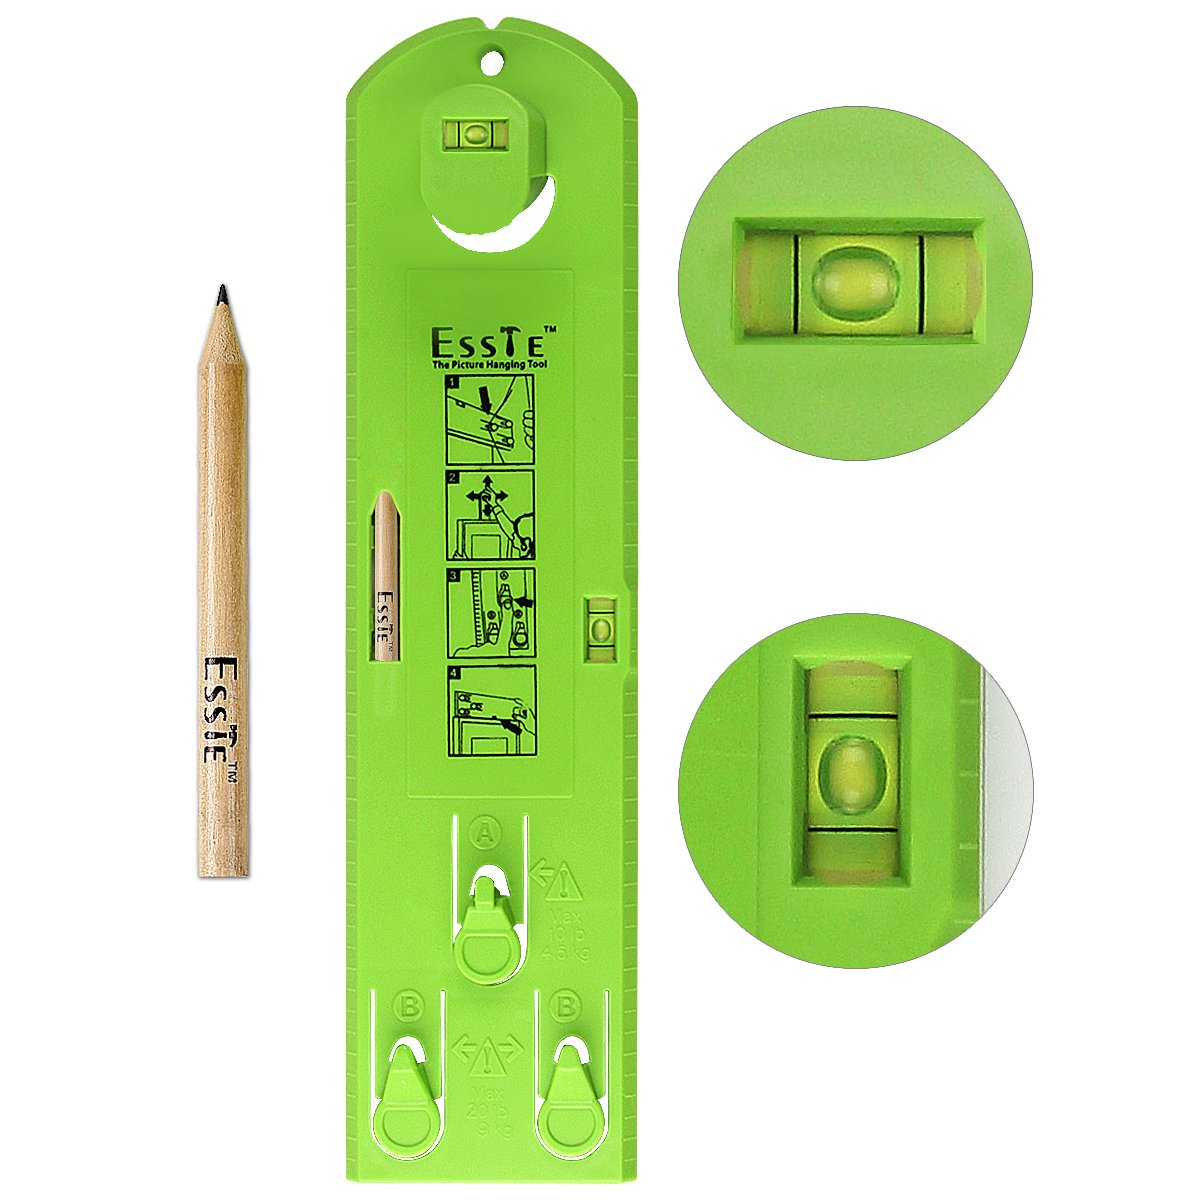 Esste Picture Frame Level Ruler - Suspension measurement marking position tool with a pencil for measuring the suspension and horizontal wall of the roof by Esste (Image #1)